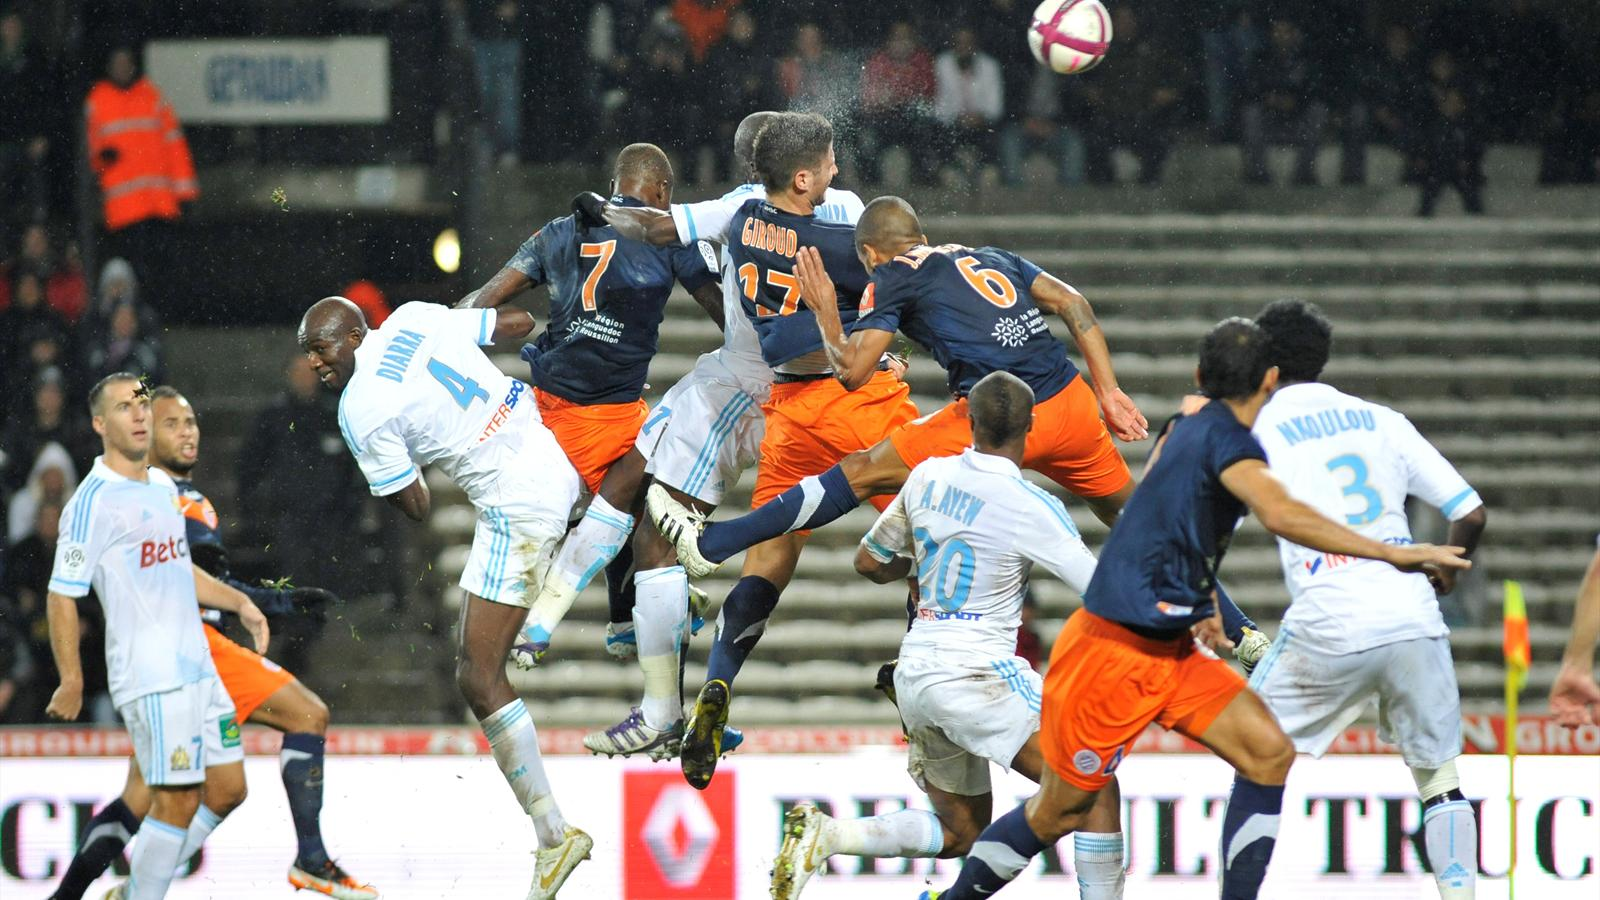 Match Olympique de Marseille Montpellier en direct live streaming